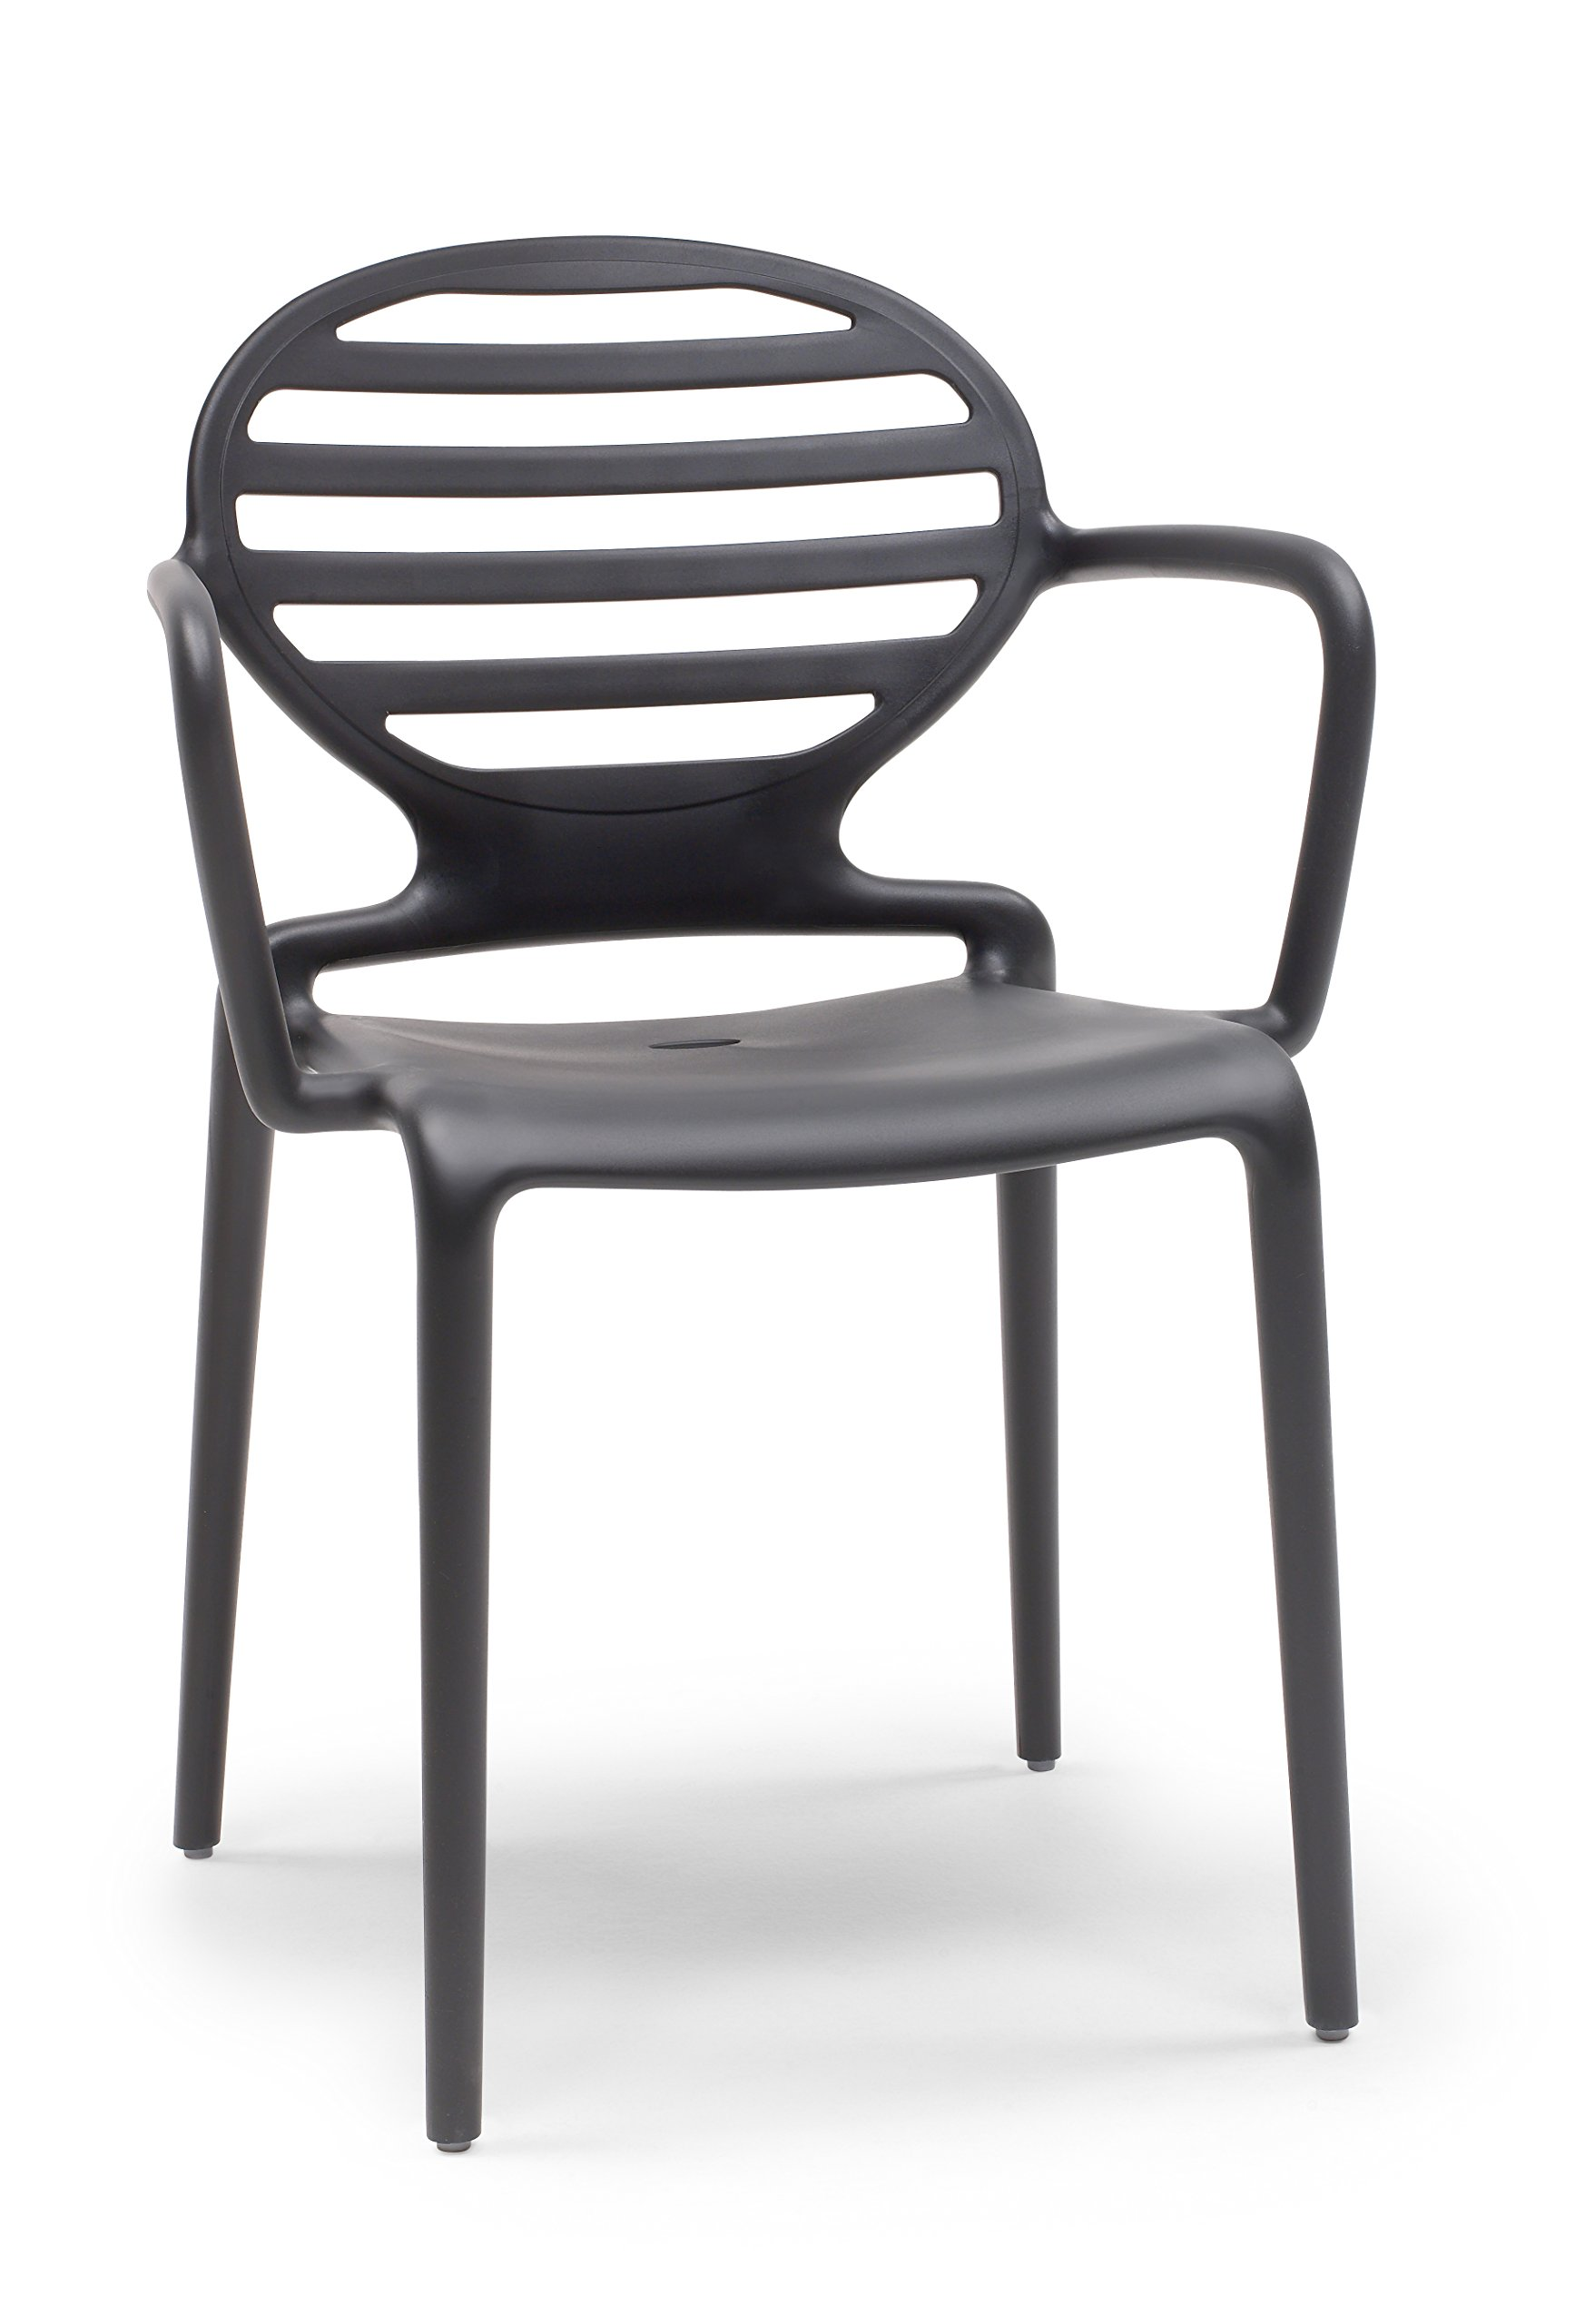 Parada One Design Cokka Modern Indoor/Outdoor Stackable Dining Chair, Anthracite Grey - Integral frame in recyclable techno polymer, in air molding reinforced with fiberglass Product is stackable Suitable for indoor and outdoor use - kitchen-dining-room-furniture, kitchen-dining-room, kitchen-dining-room-chairs - 71ECiTCHZ9L -